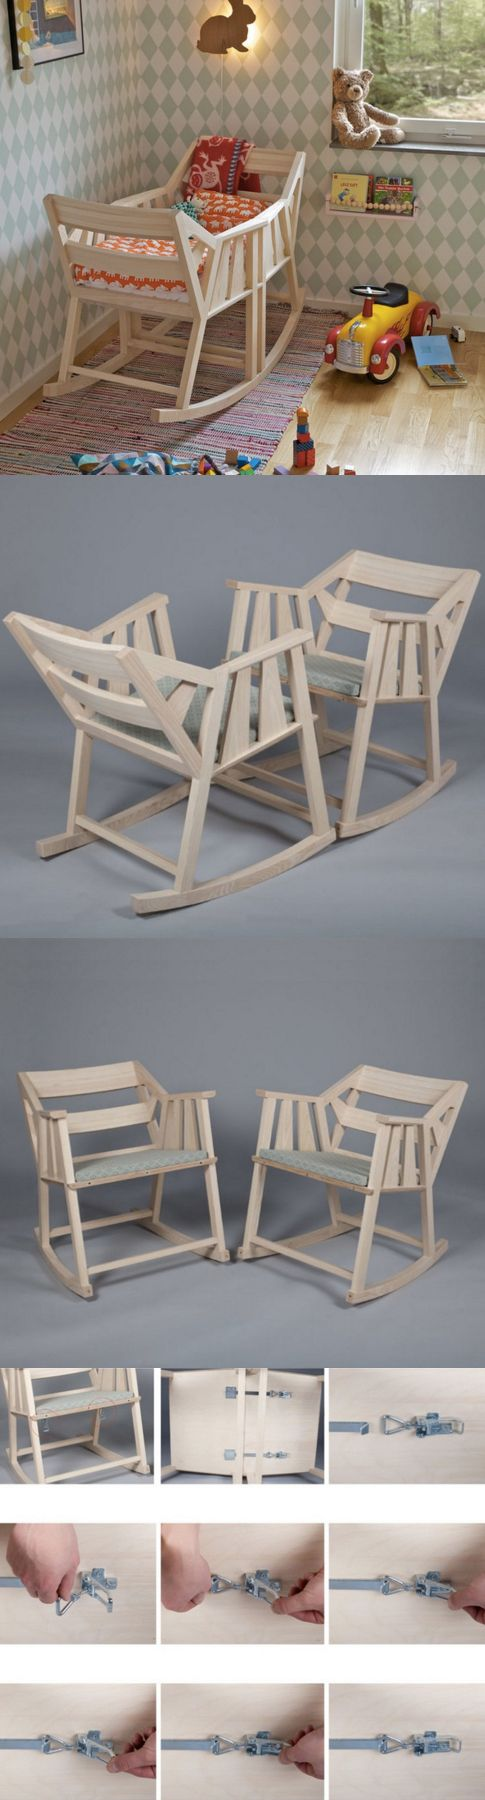 Schaukelstuhl swing insp eames rocking chair rar ahorn - 2 In 1 Babybed And Rocking Chairs Perfect For Your Nursery Http